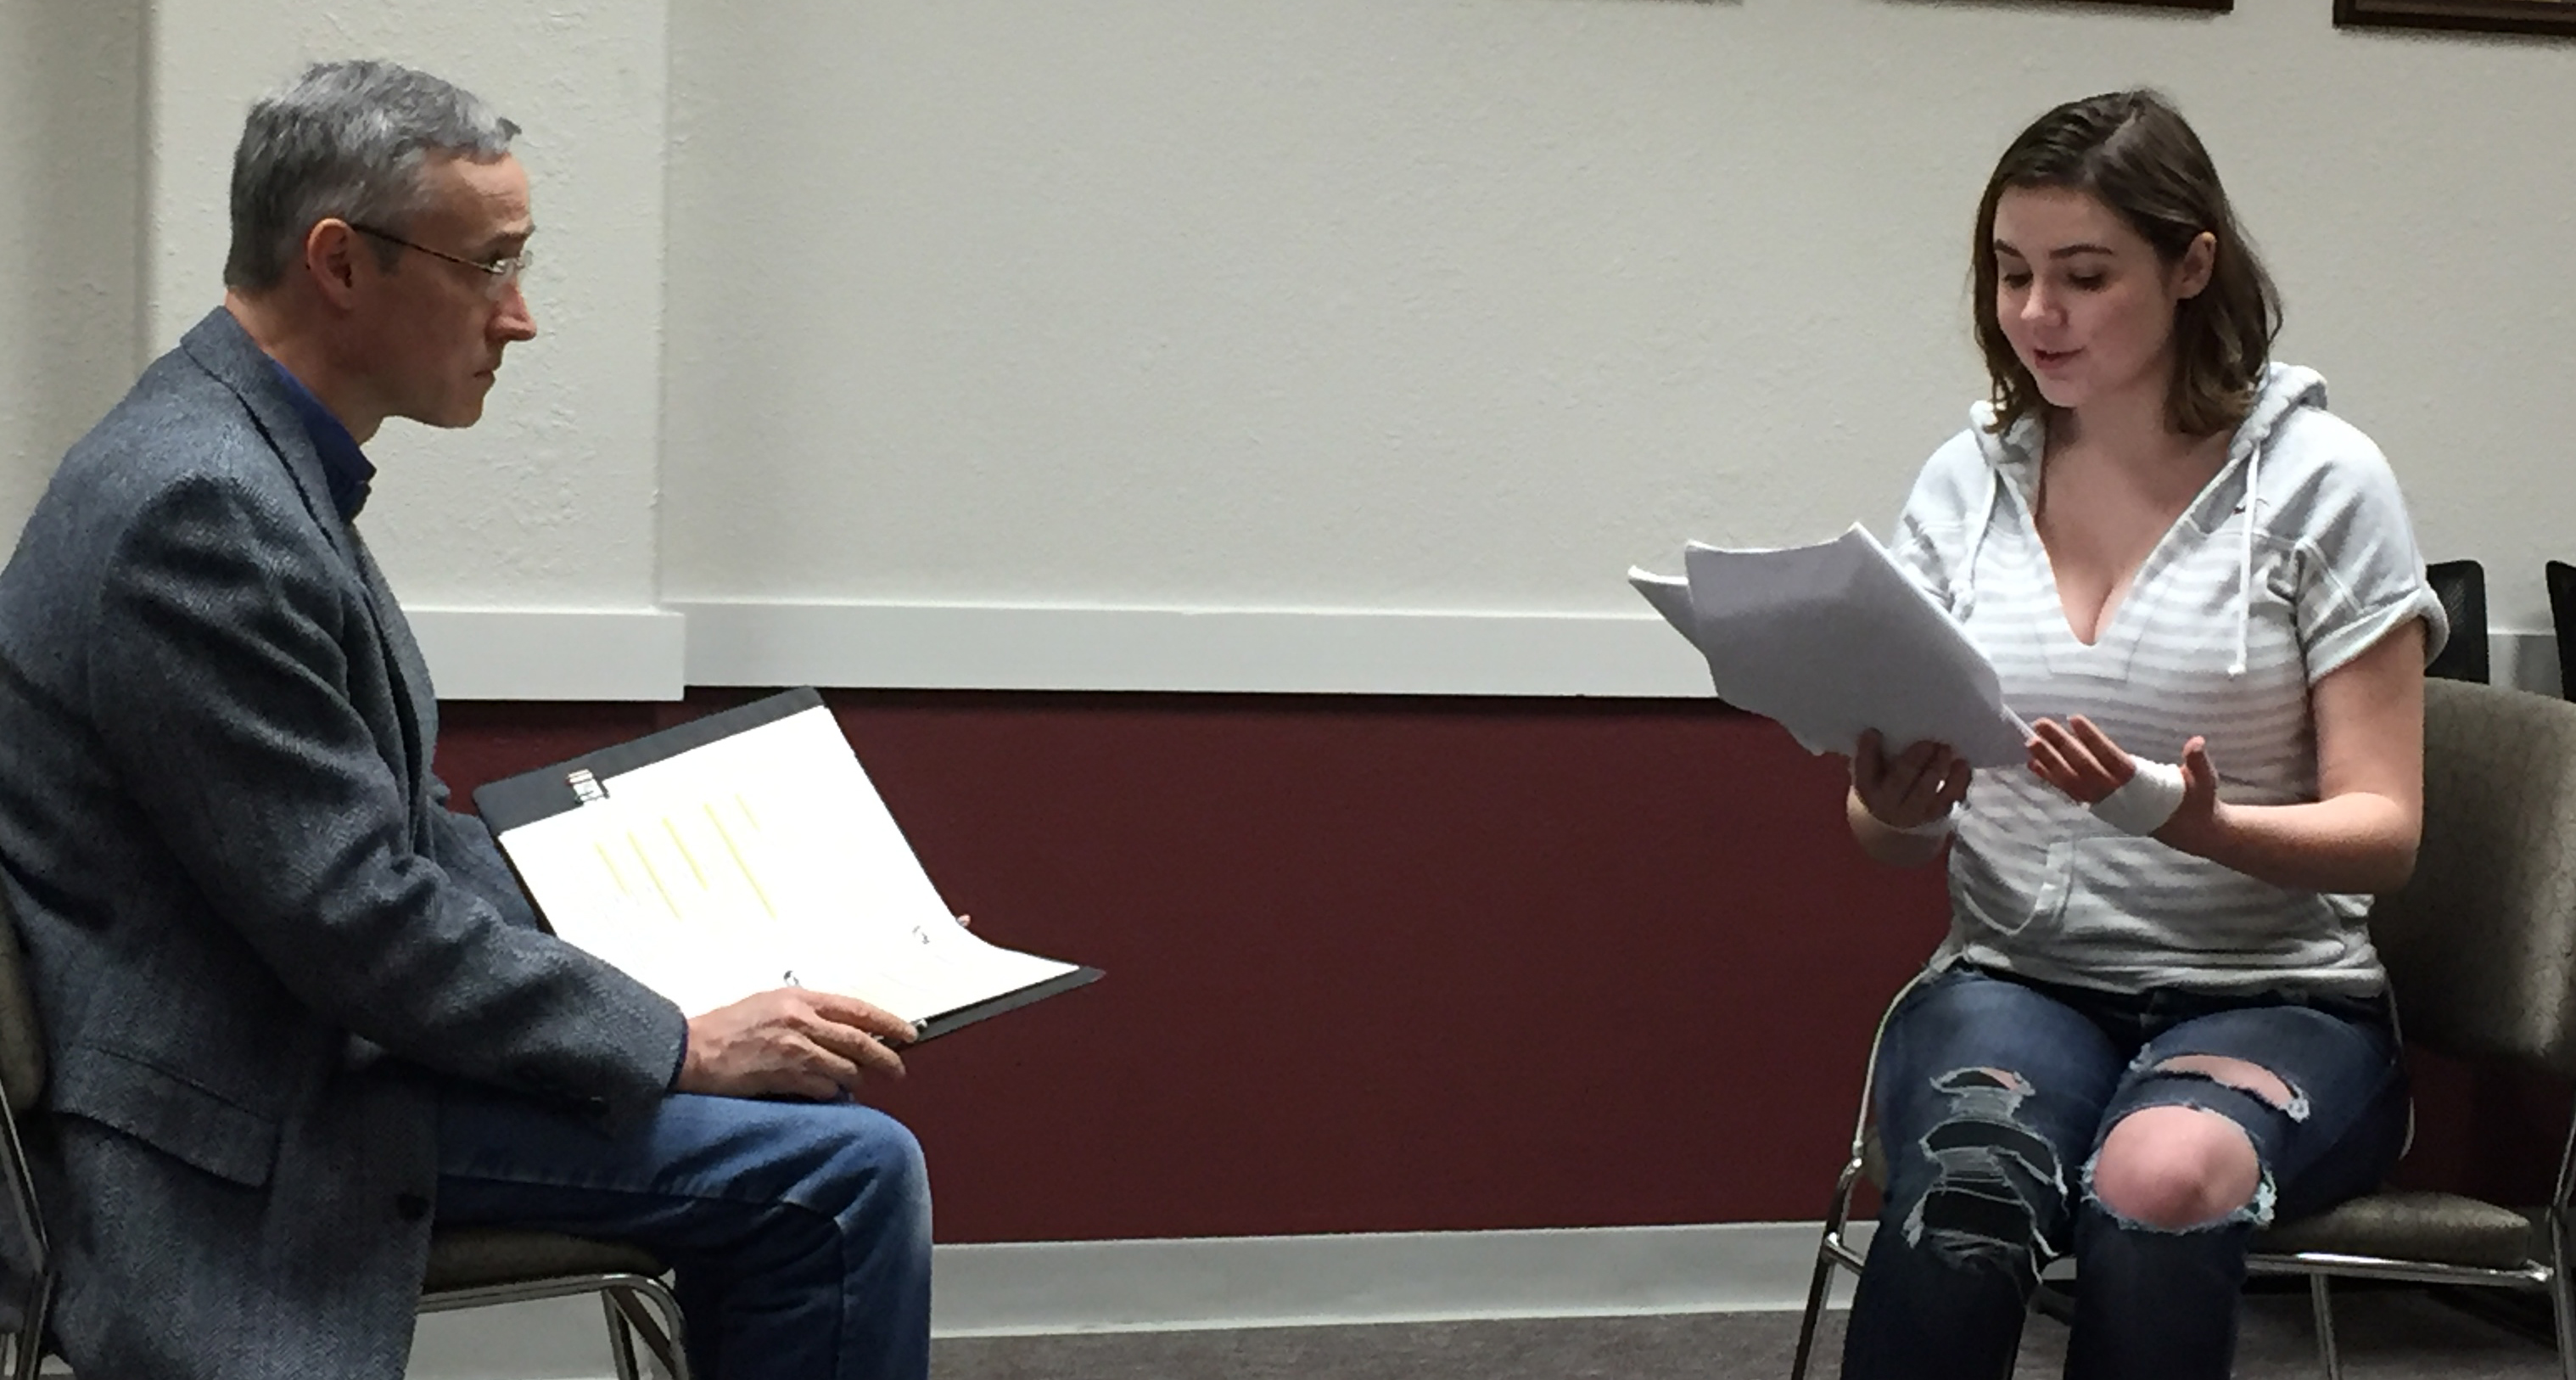 One Night Stand Theatre rehearsing for the staged reading of Singularity